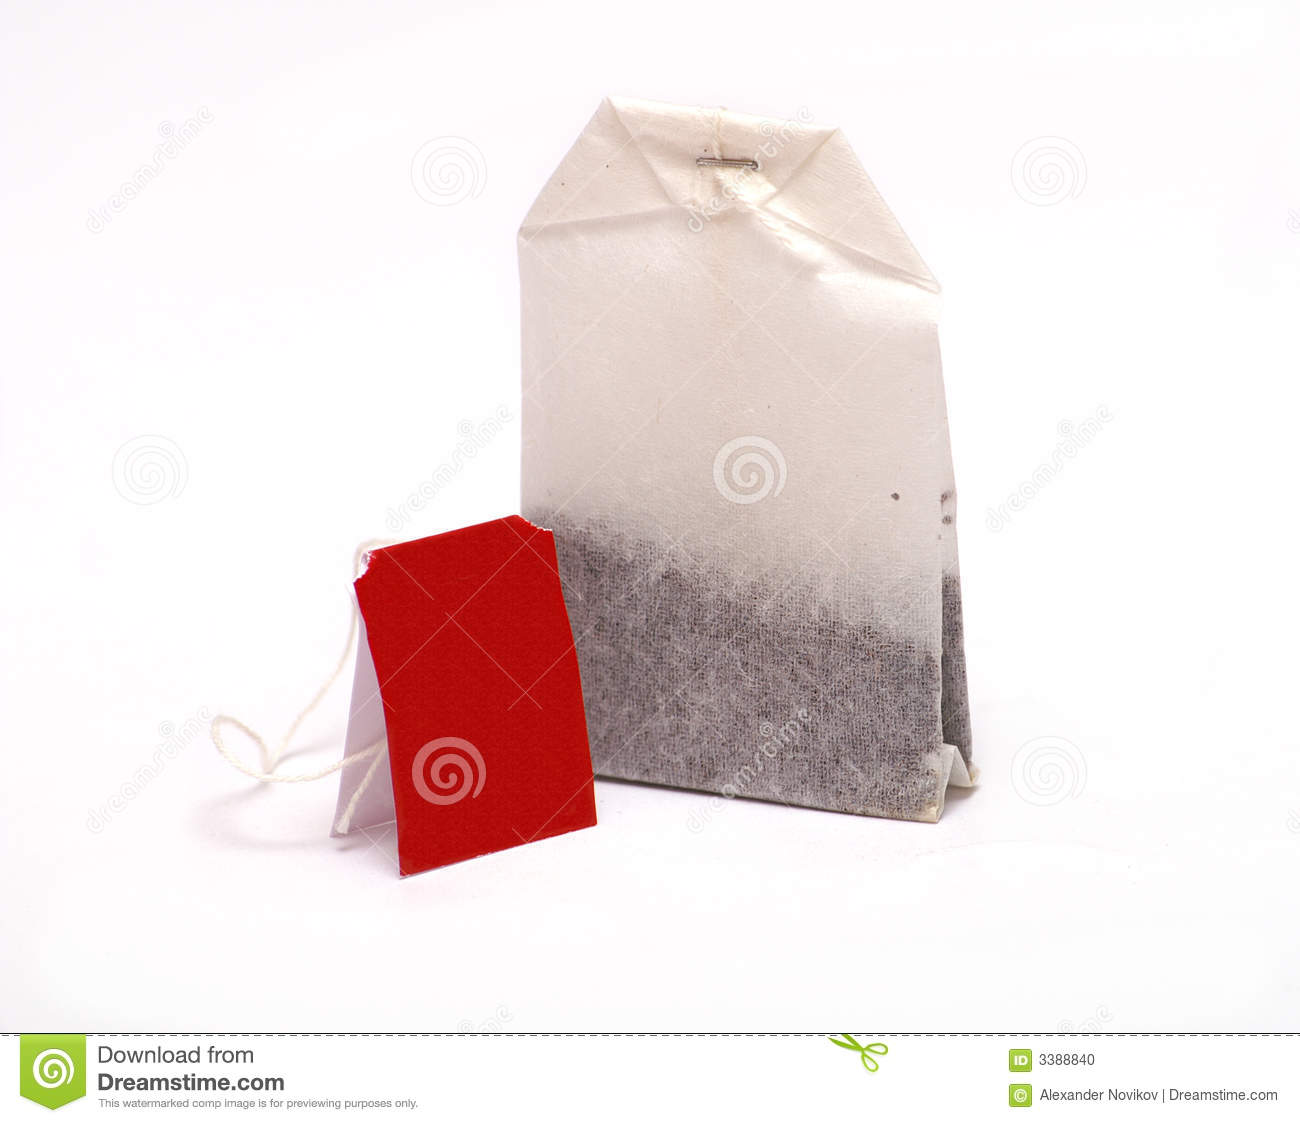 business plan of a tea bag The high tea has been selected as it is a relatively easy and enjoyable function to attend, plan and organise through attendances, develop a strong data base to support future events.